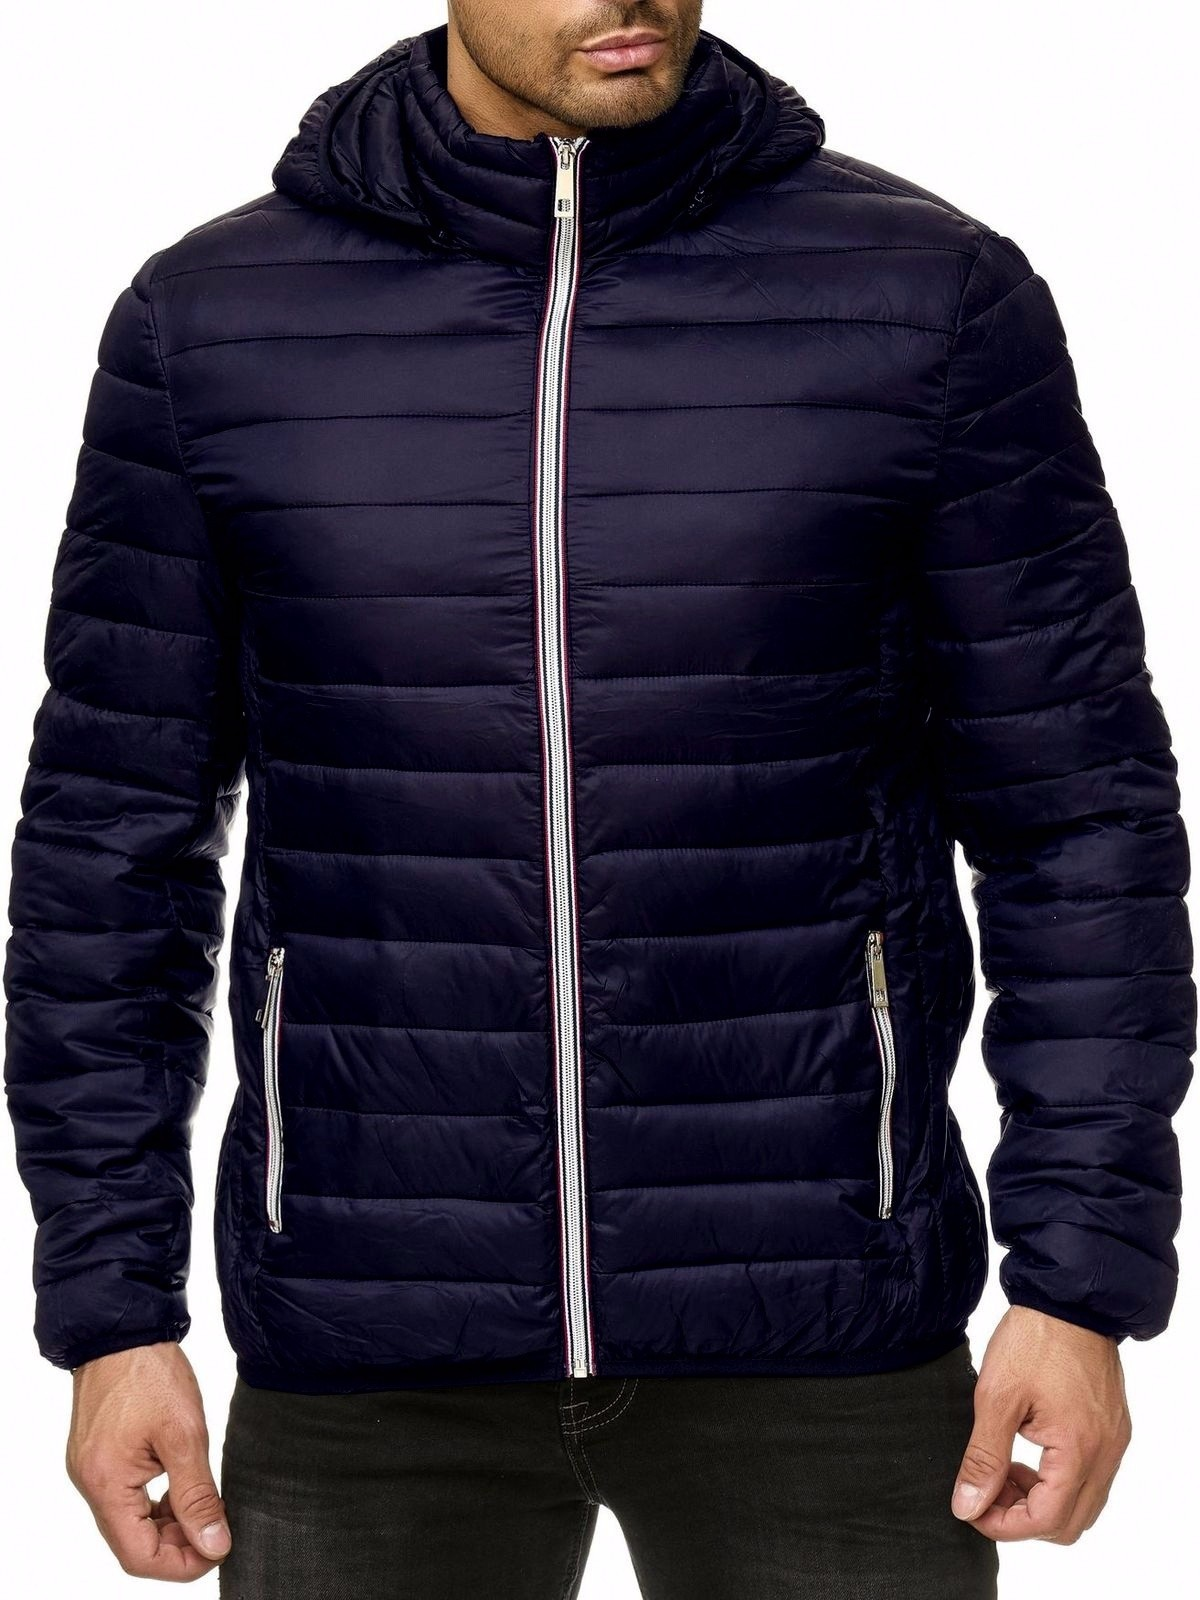 Mens Hooded Cotton-padded Clothes for Men Winter Coat  Jacket